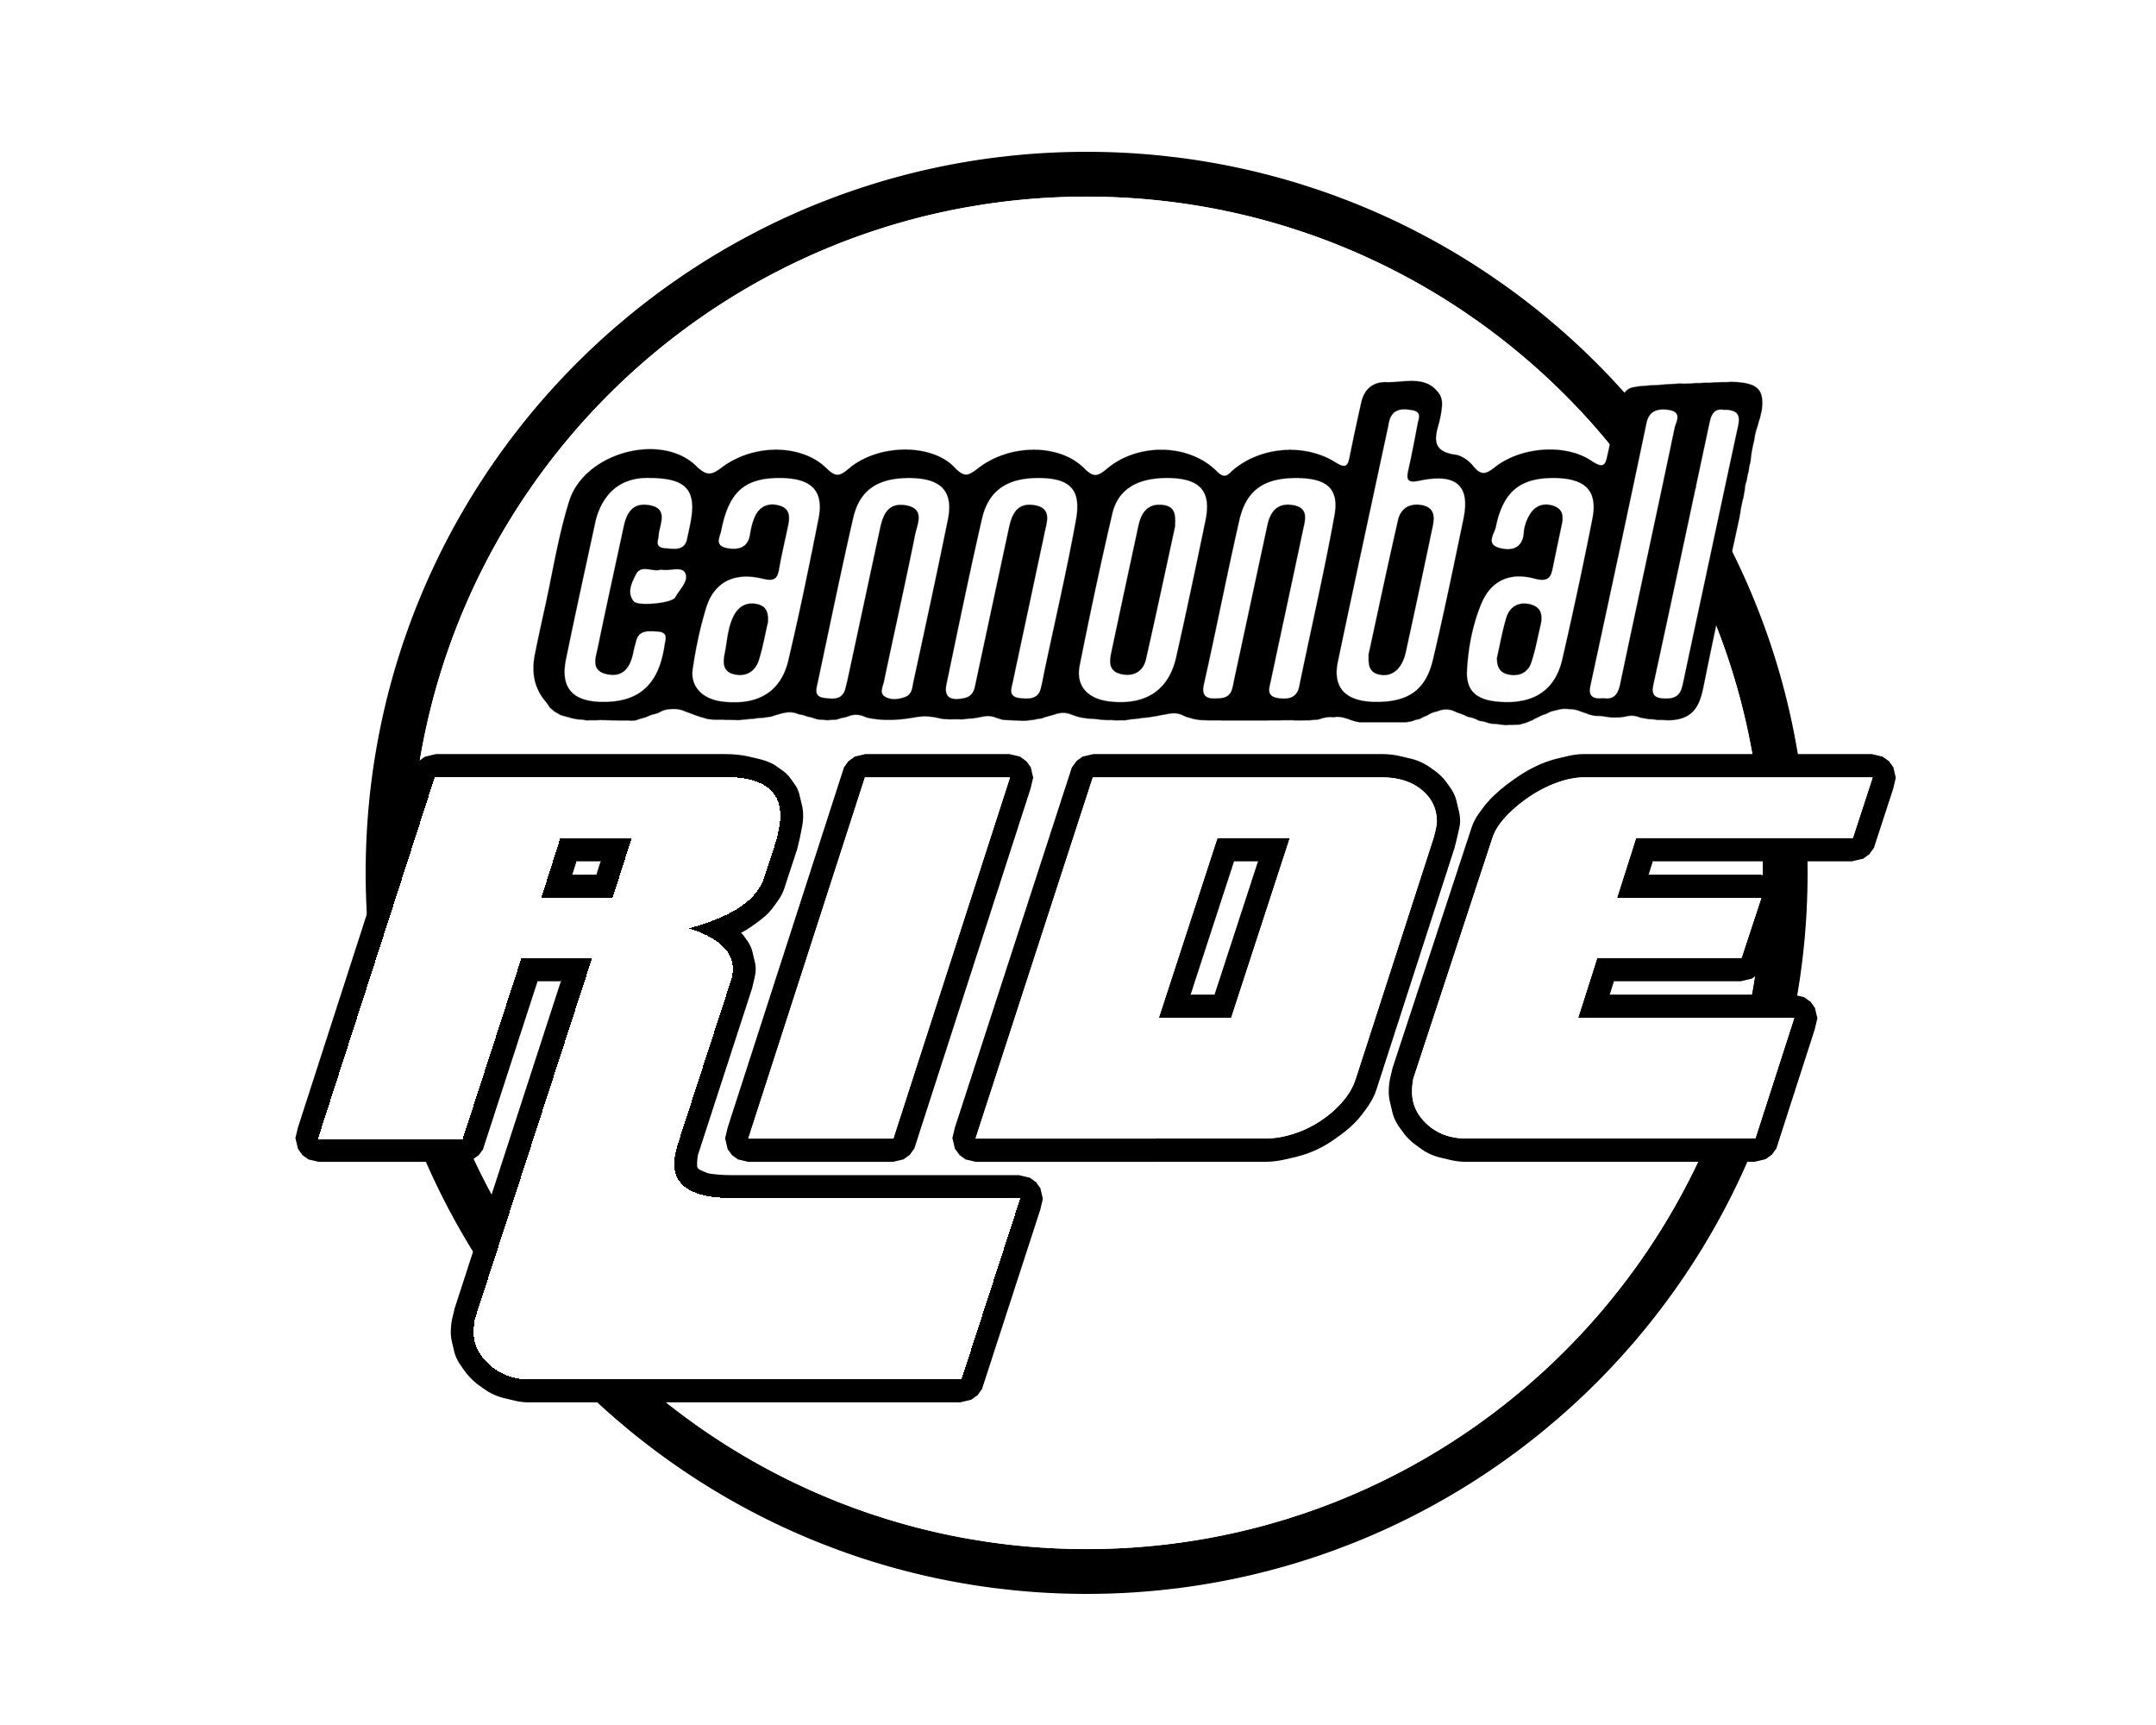 Kid cannon ball png. Cannonball ride chester from